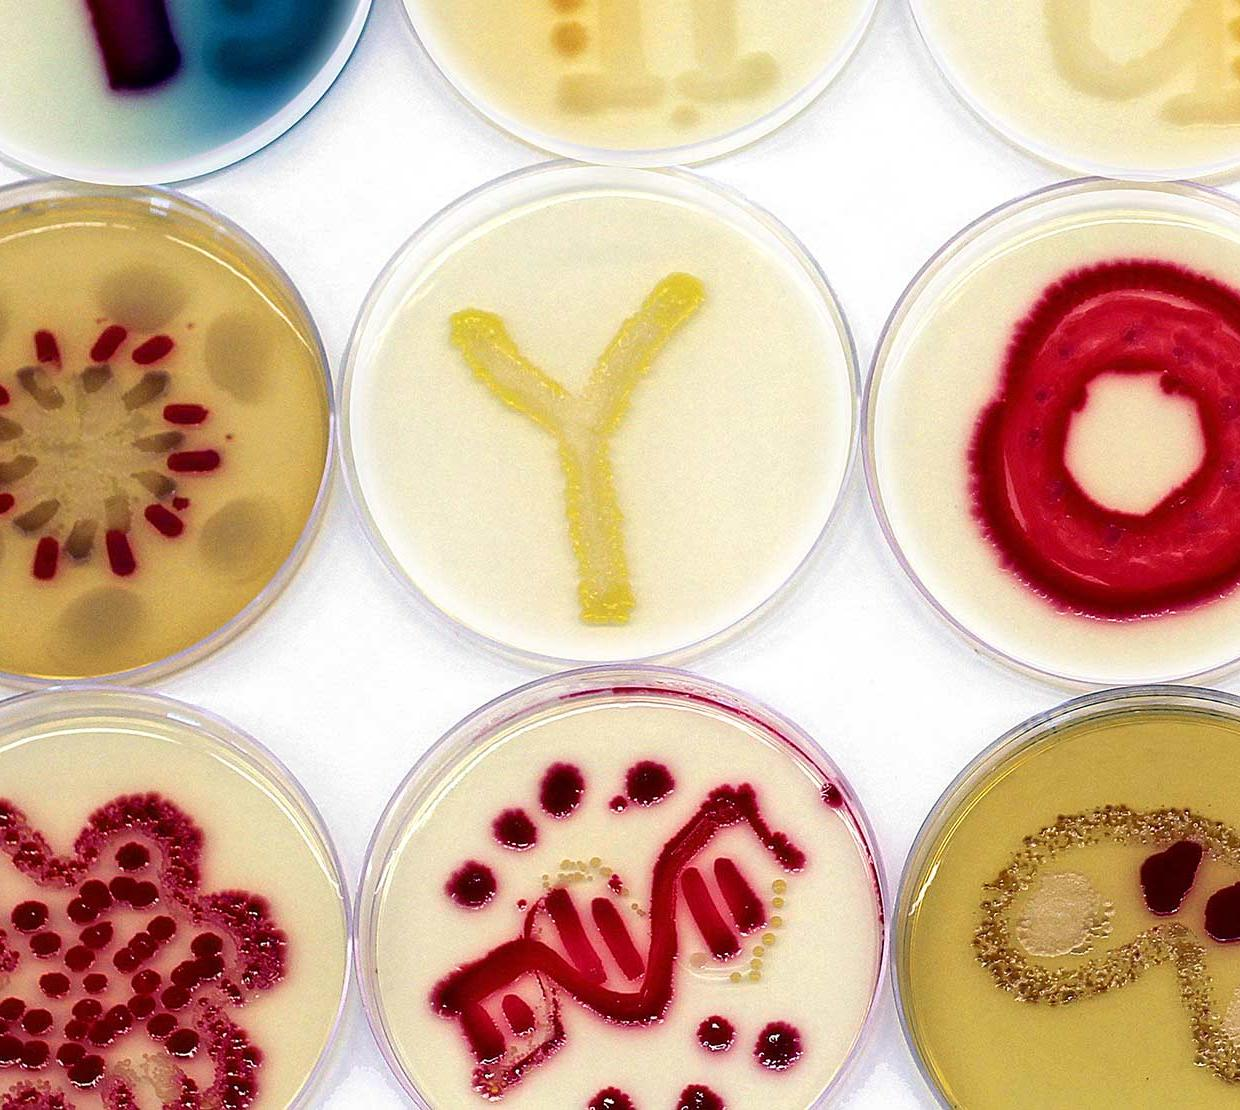 Petri dishes with micro-biome artwork